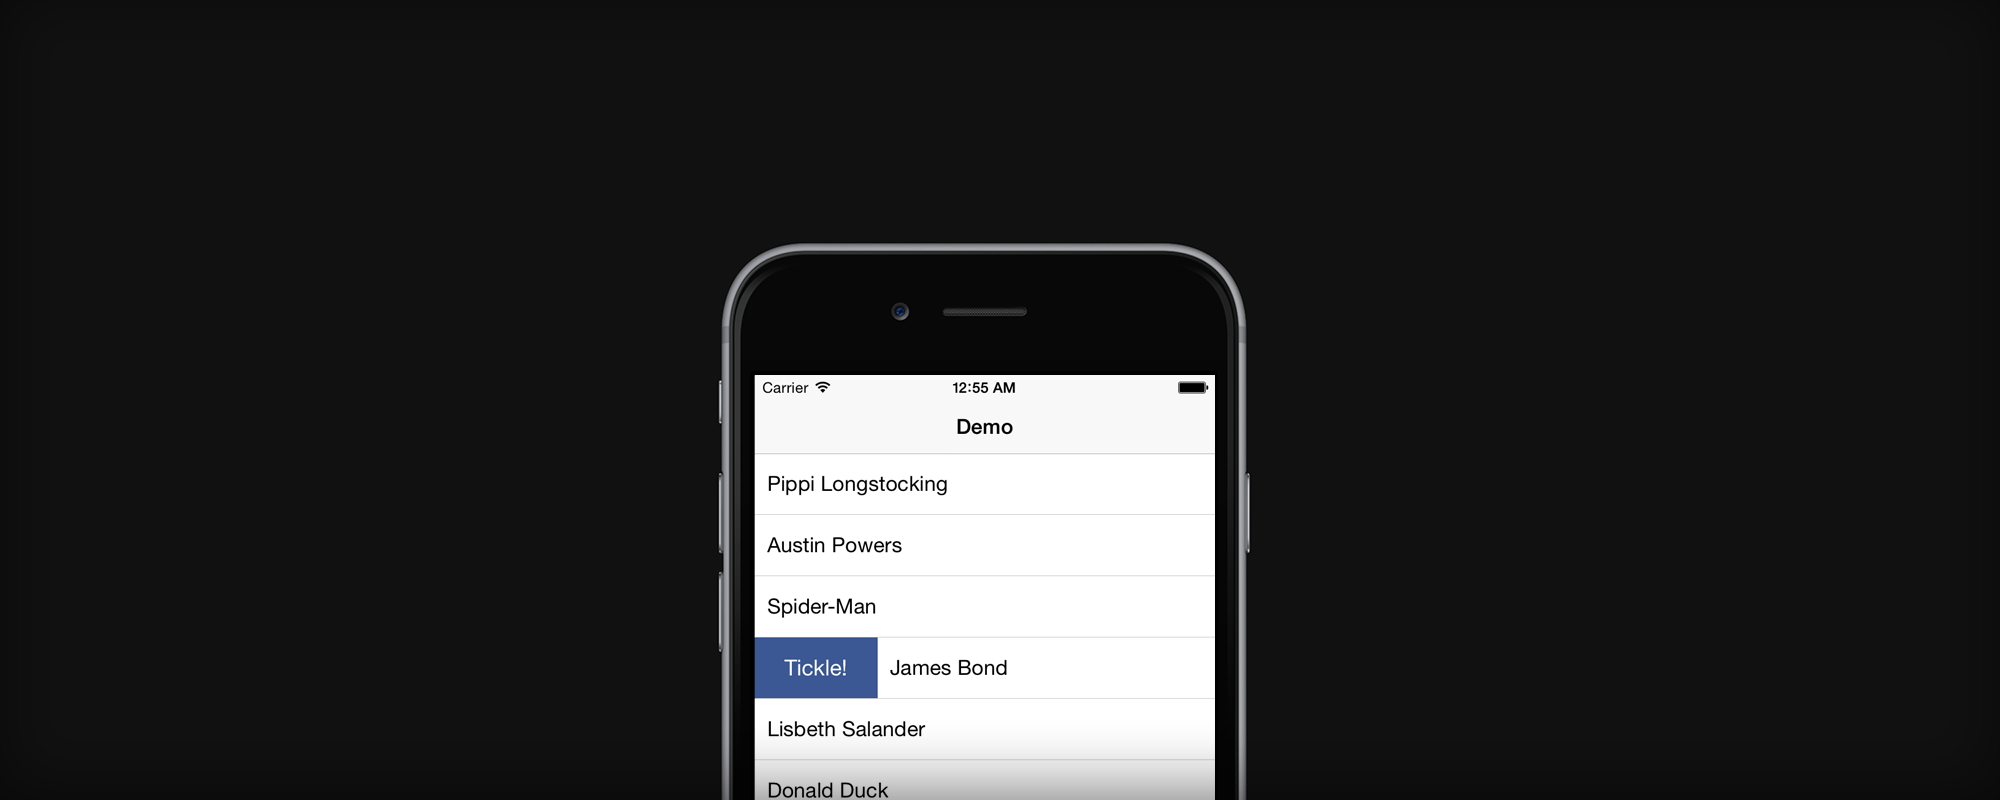 Swipeable table view cells in iOS apps